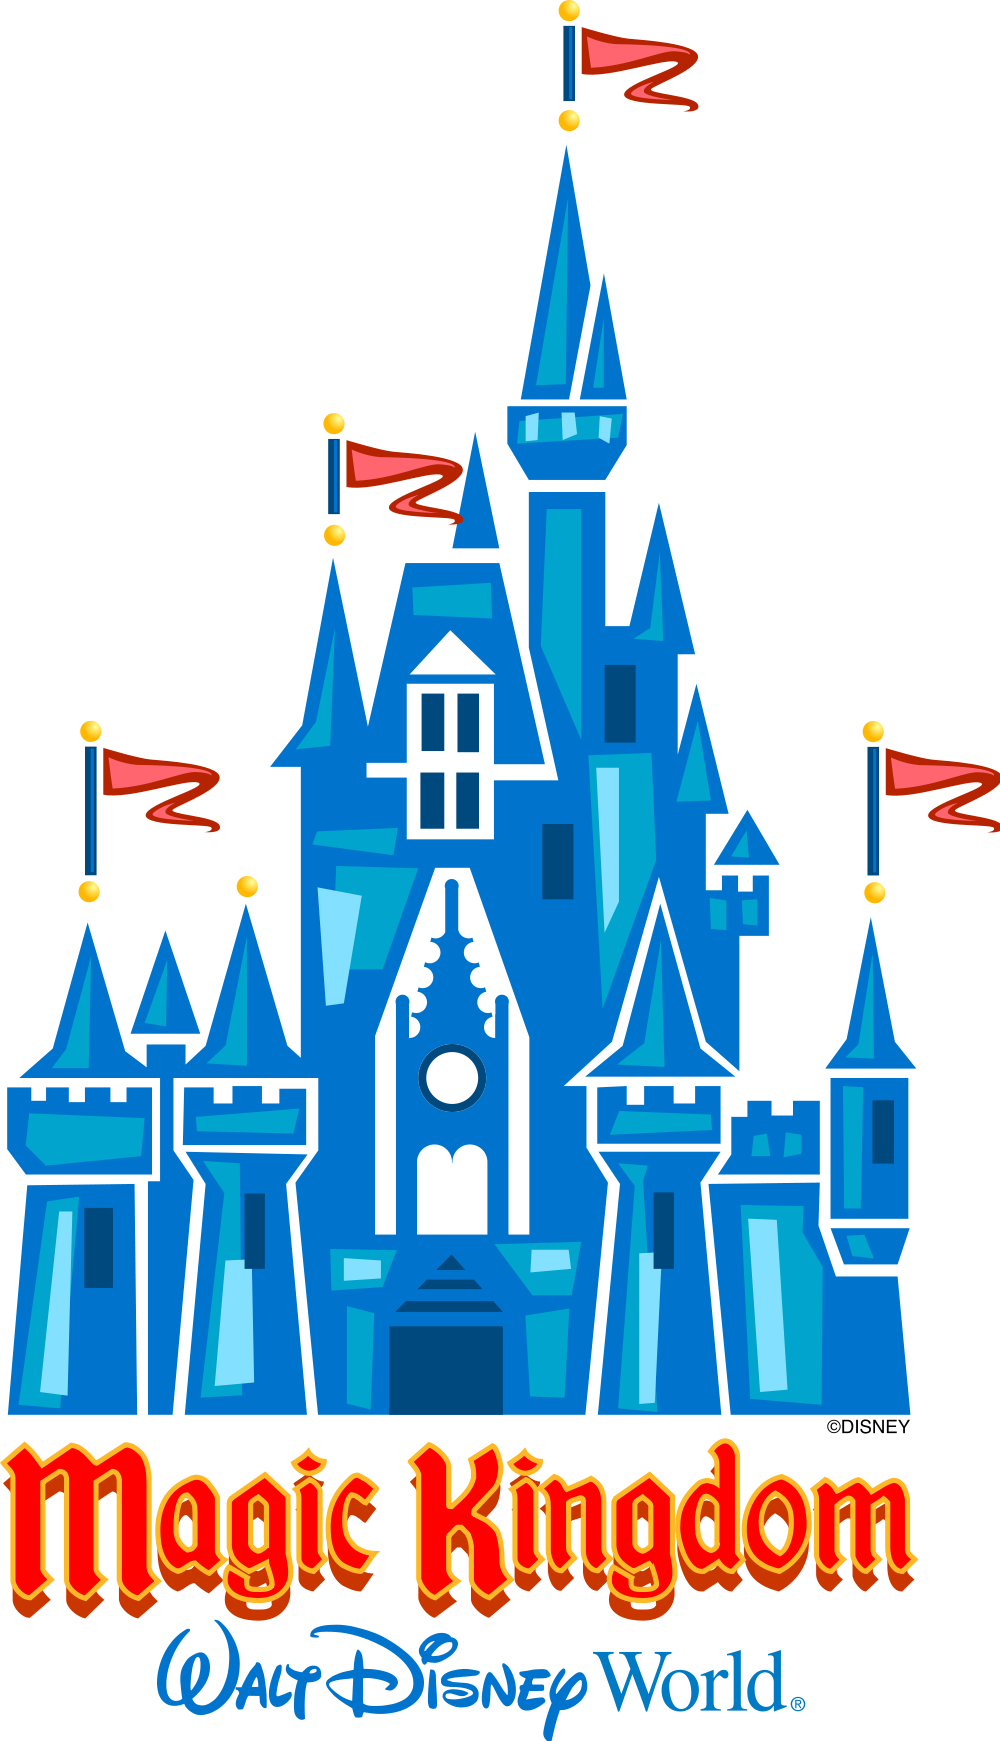 Disney Castle Logo Png Disney Castle Logo Vectormagic Kingdom Pirates